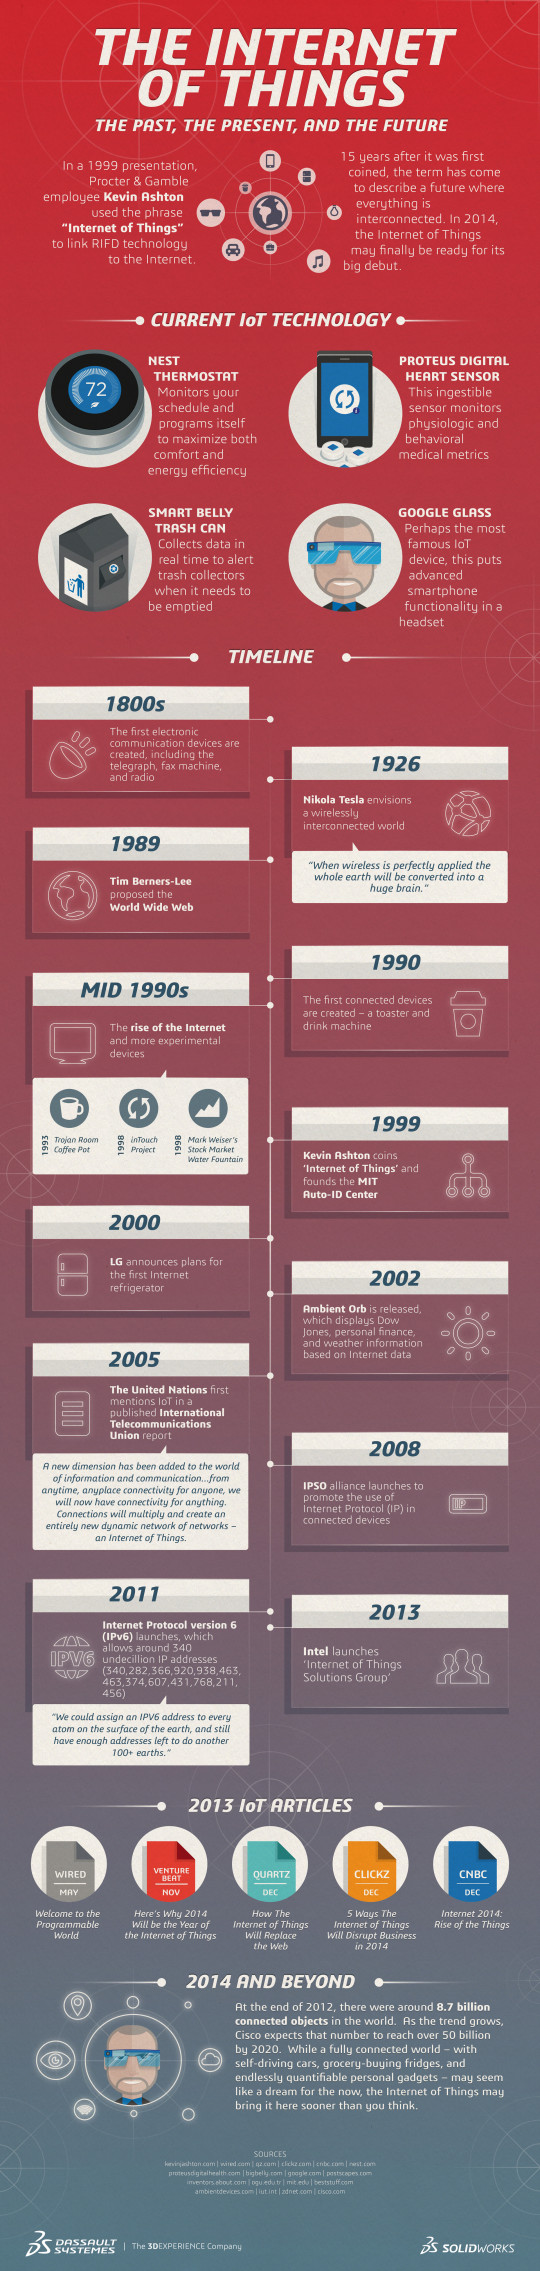 The Internet of Things: The Past, The Present, and The Future